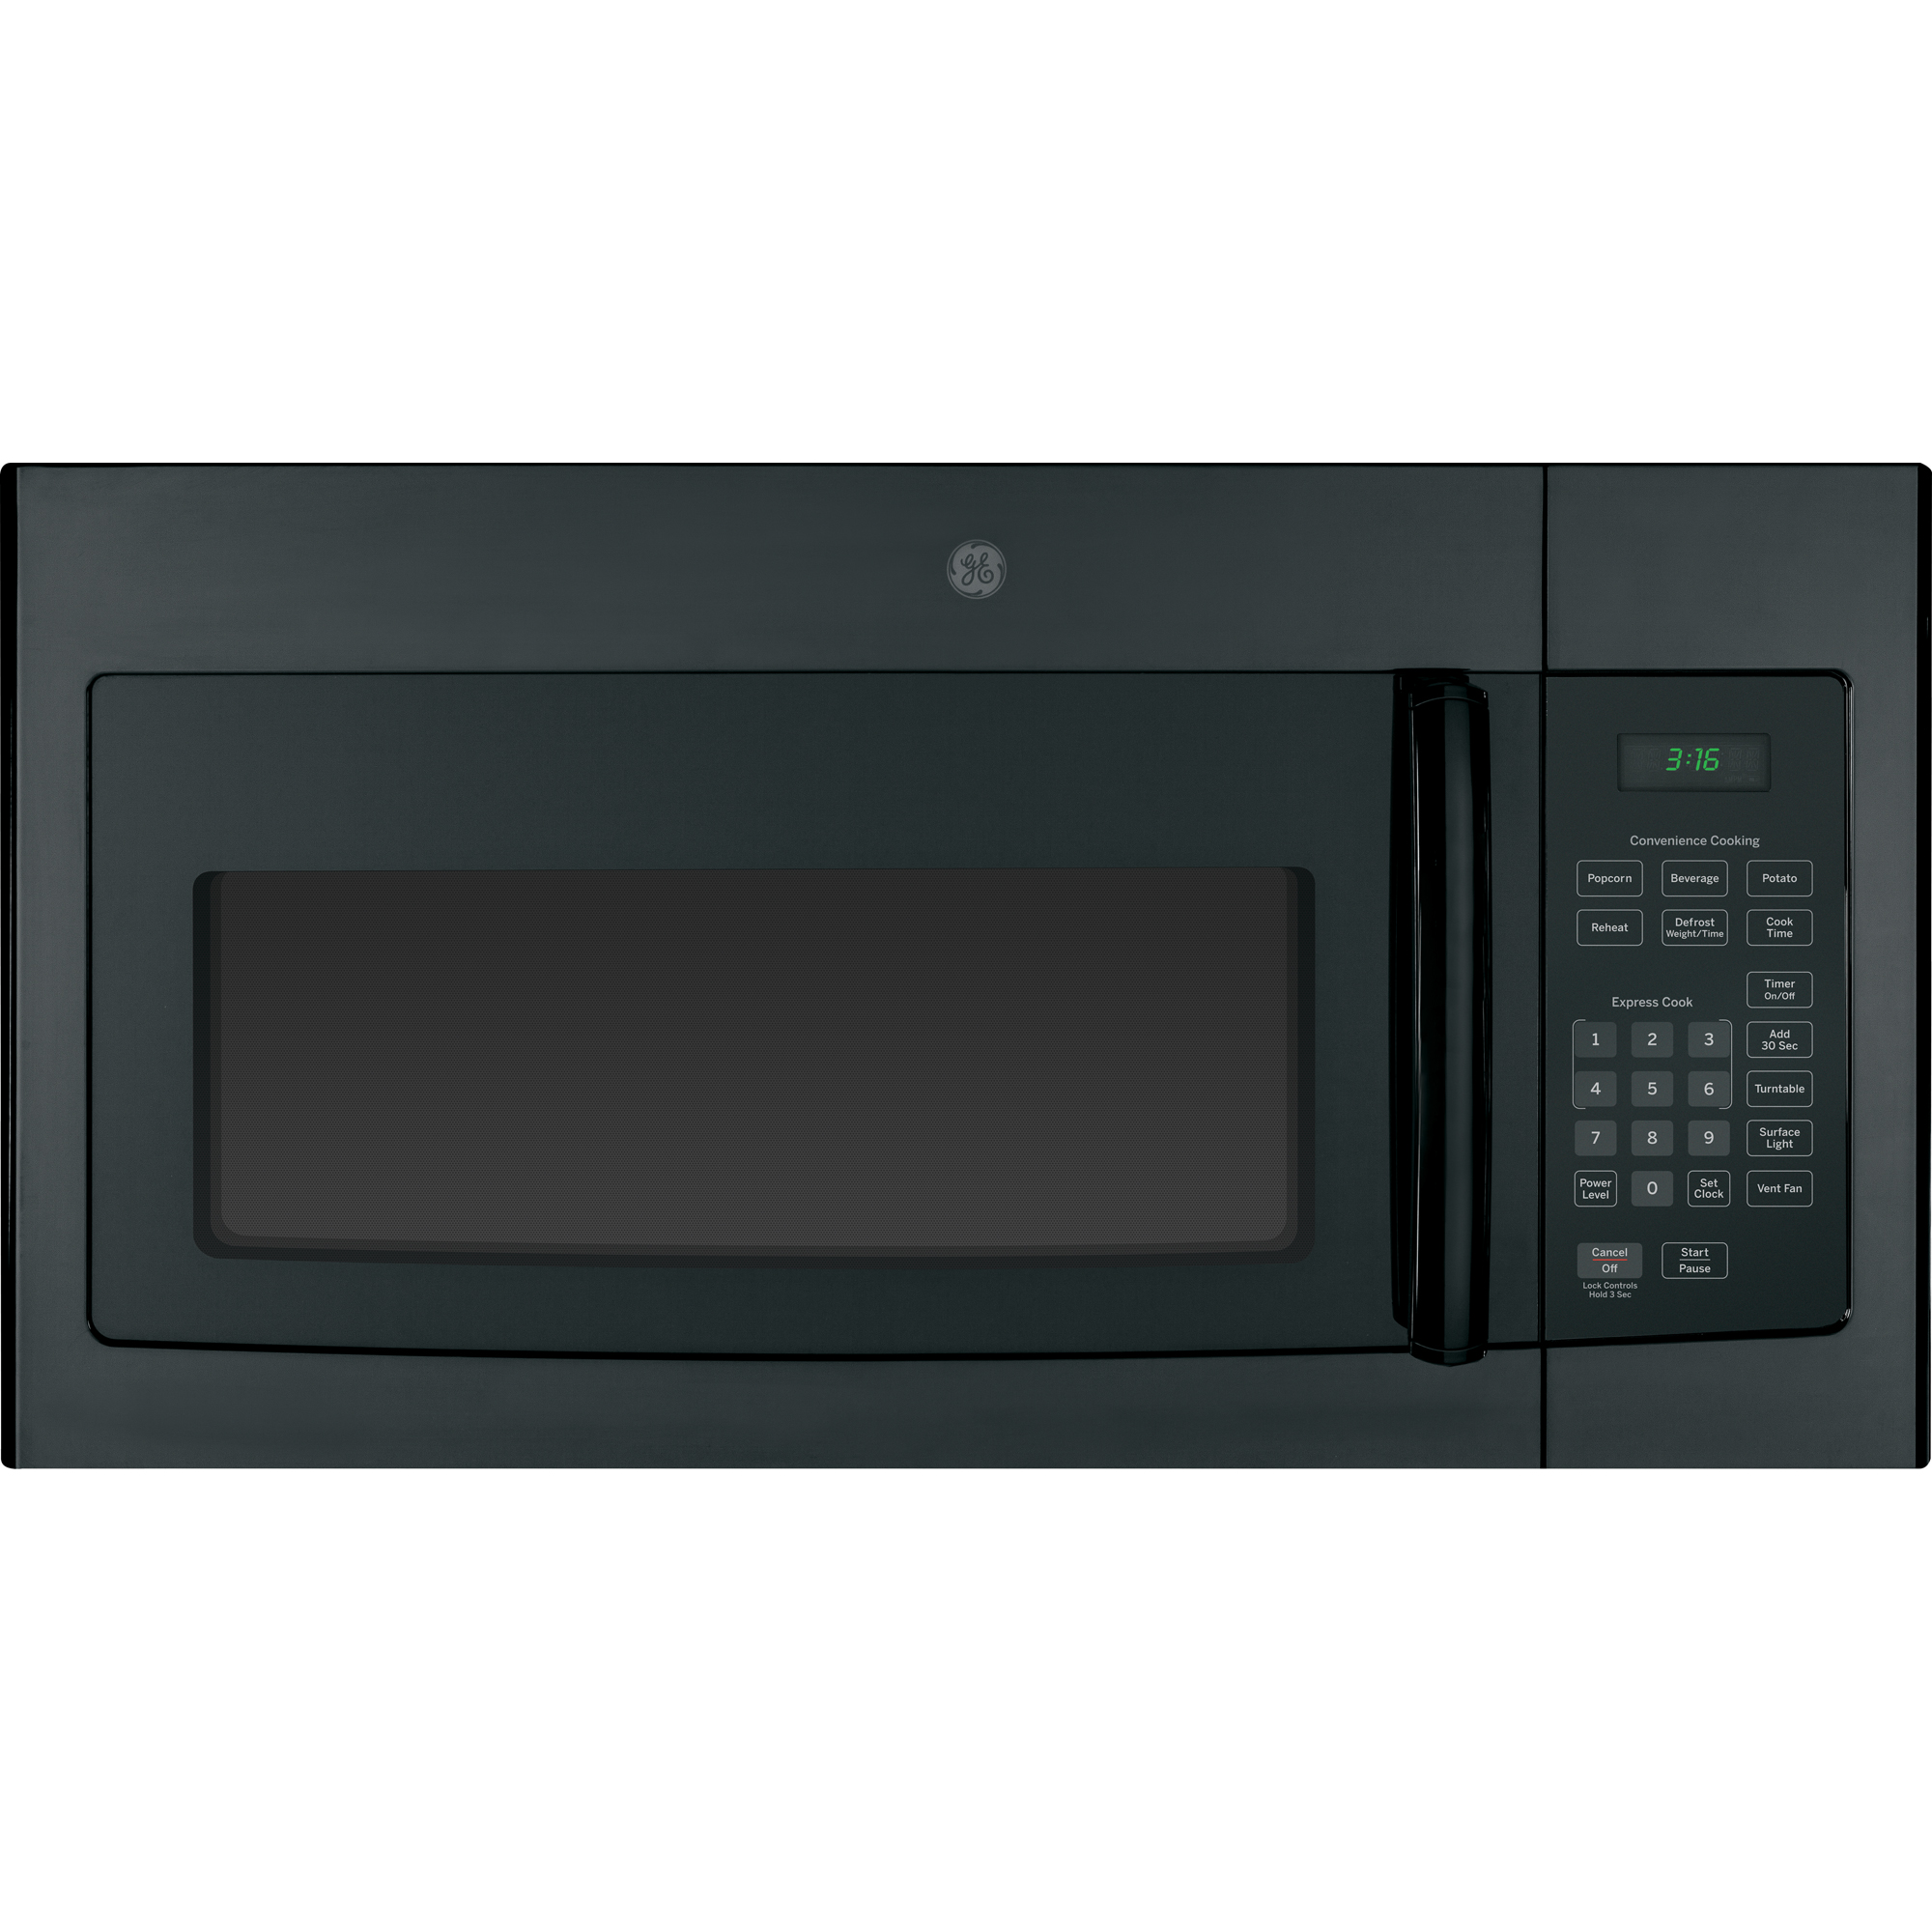 Ge Liances Jvm3160dfbb 1 6 Cu Ft Over The Range Microwave Oven Black